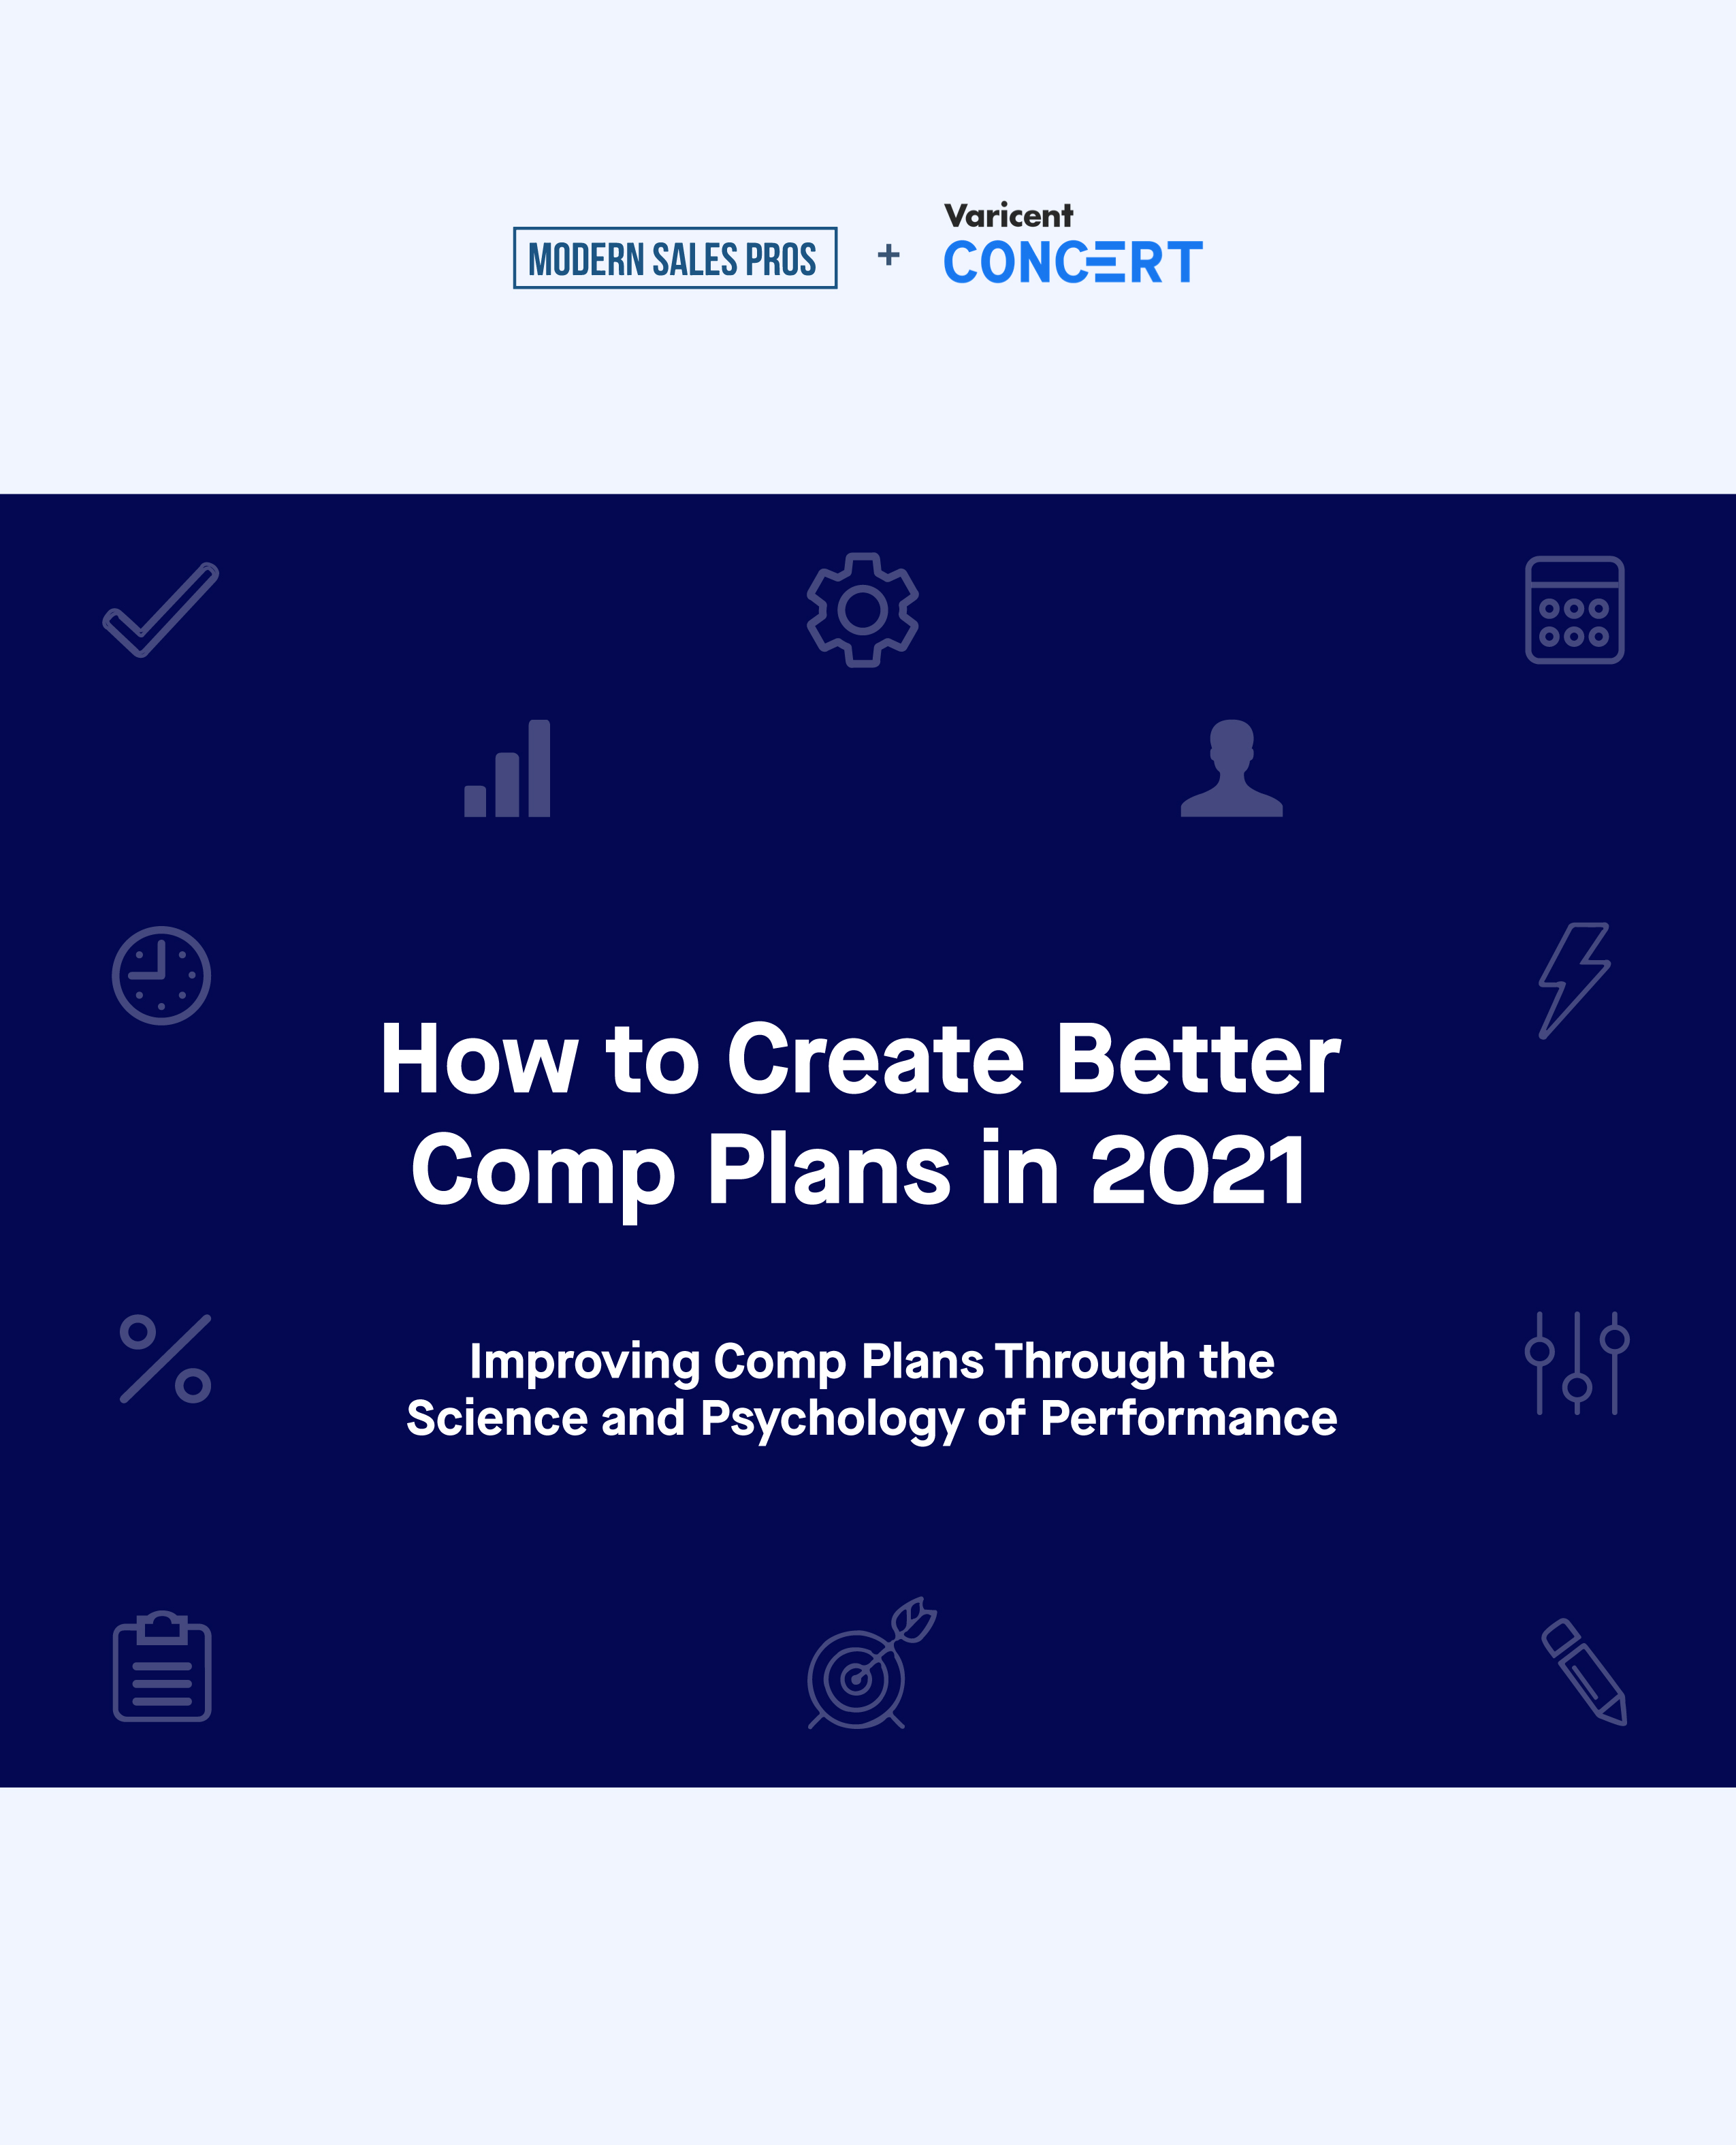 How to Create Better Comp Plans in 2021